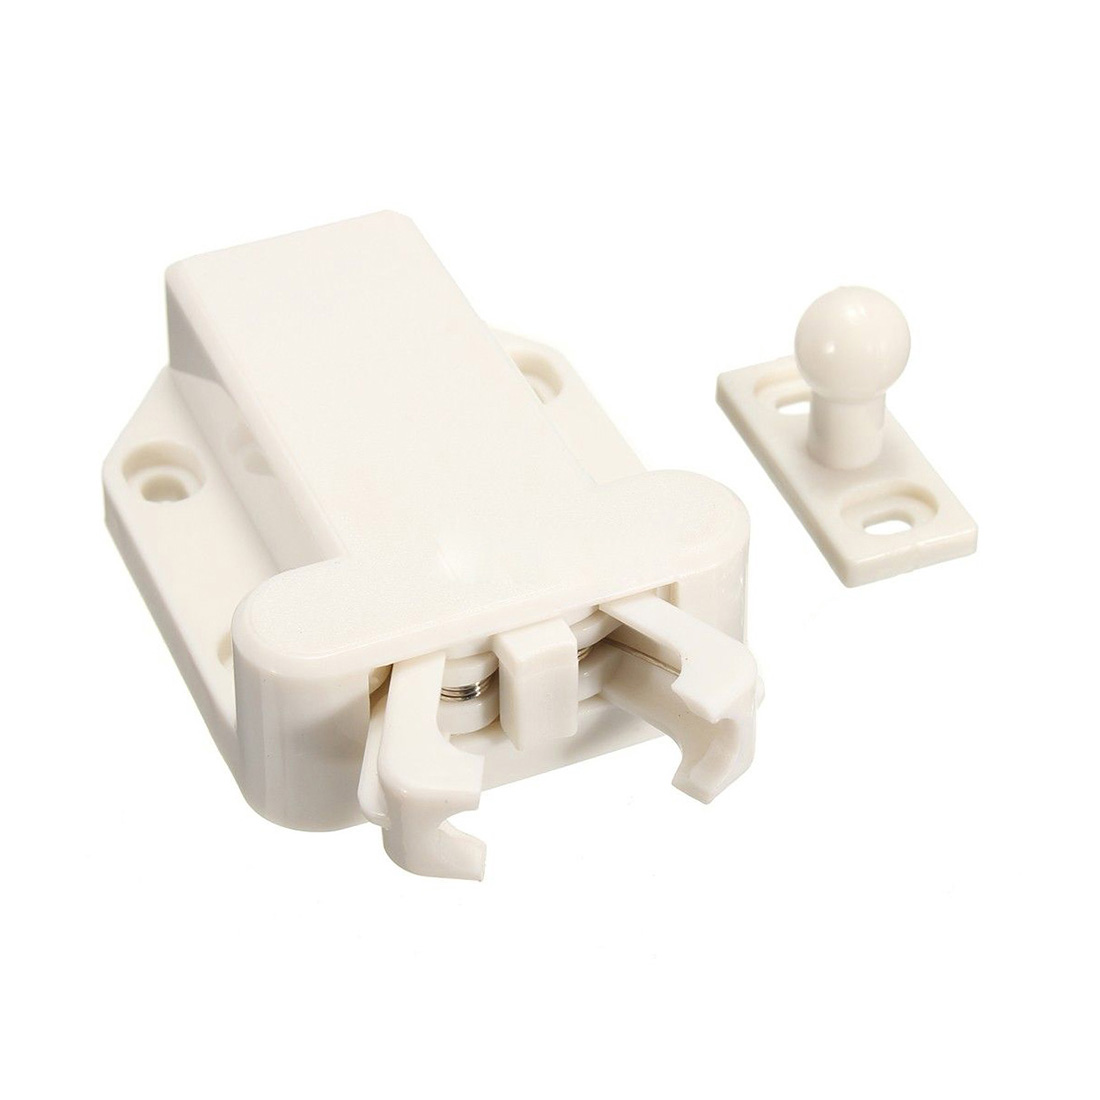 4X Push To Open Beetles Drawer Cabinet Latch Catch Touch Release Cupboard White push to open beetles drawer cabinet latch catch touch release kitchen cupboard new arrival high quality